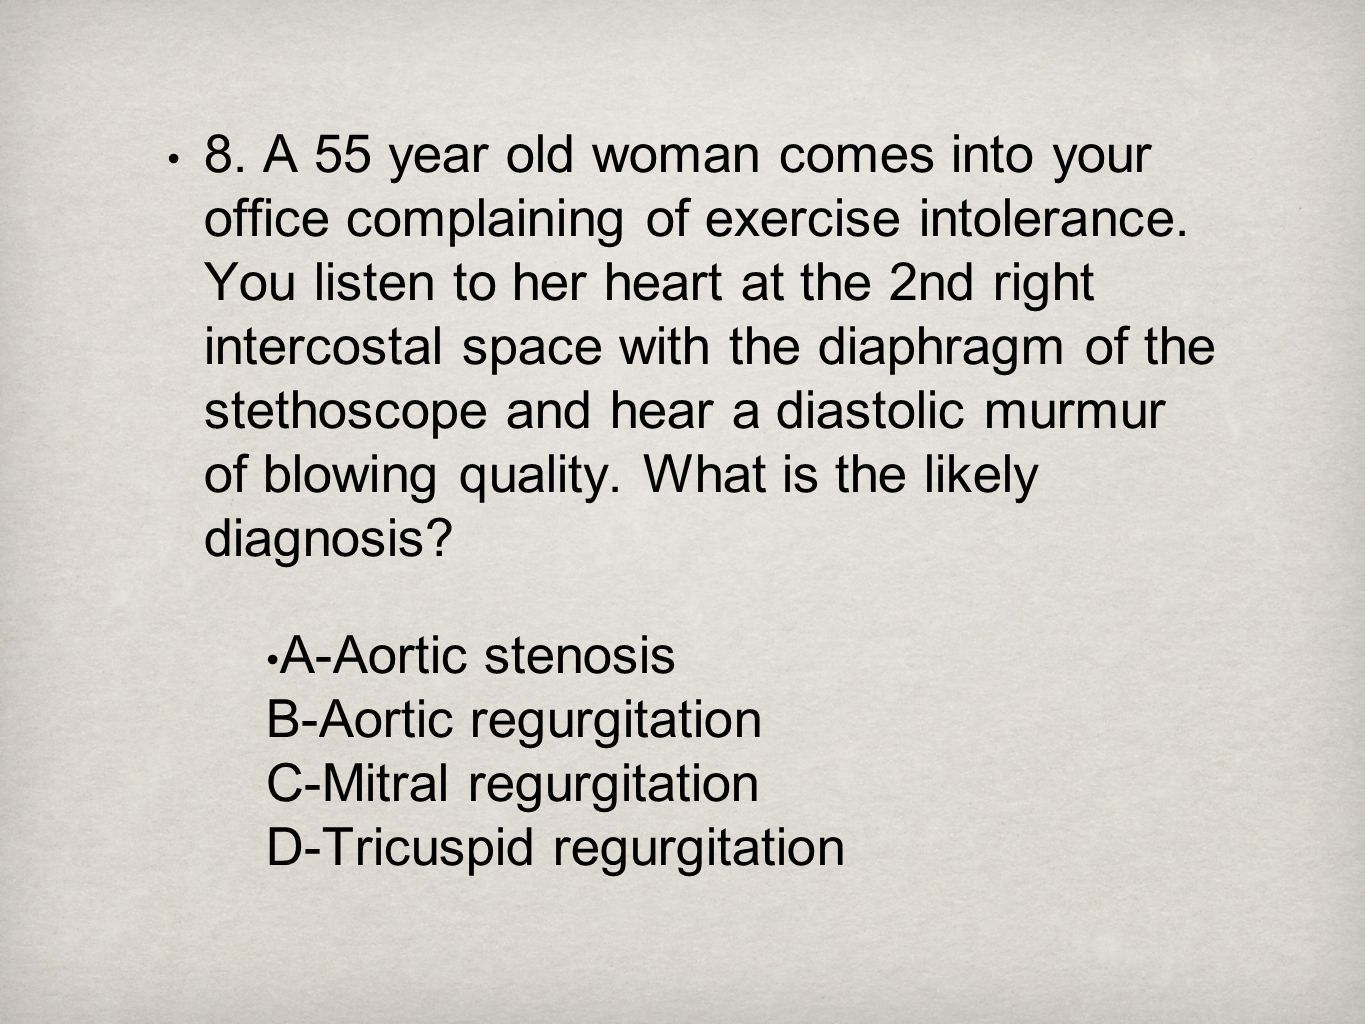 8. A 55 year old woman comes into your office complaining of exercise intolerance. You listen to her heart at the 2nd right intercostal space with the